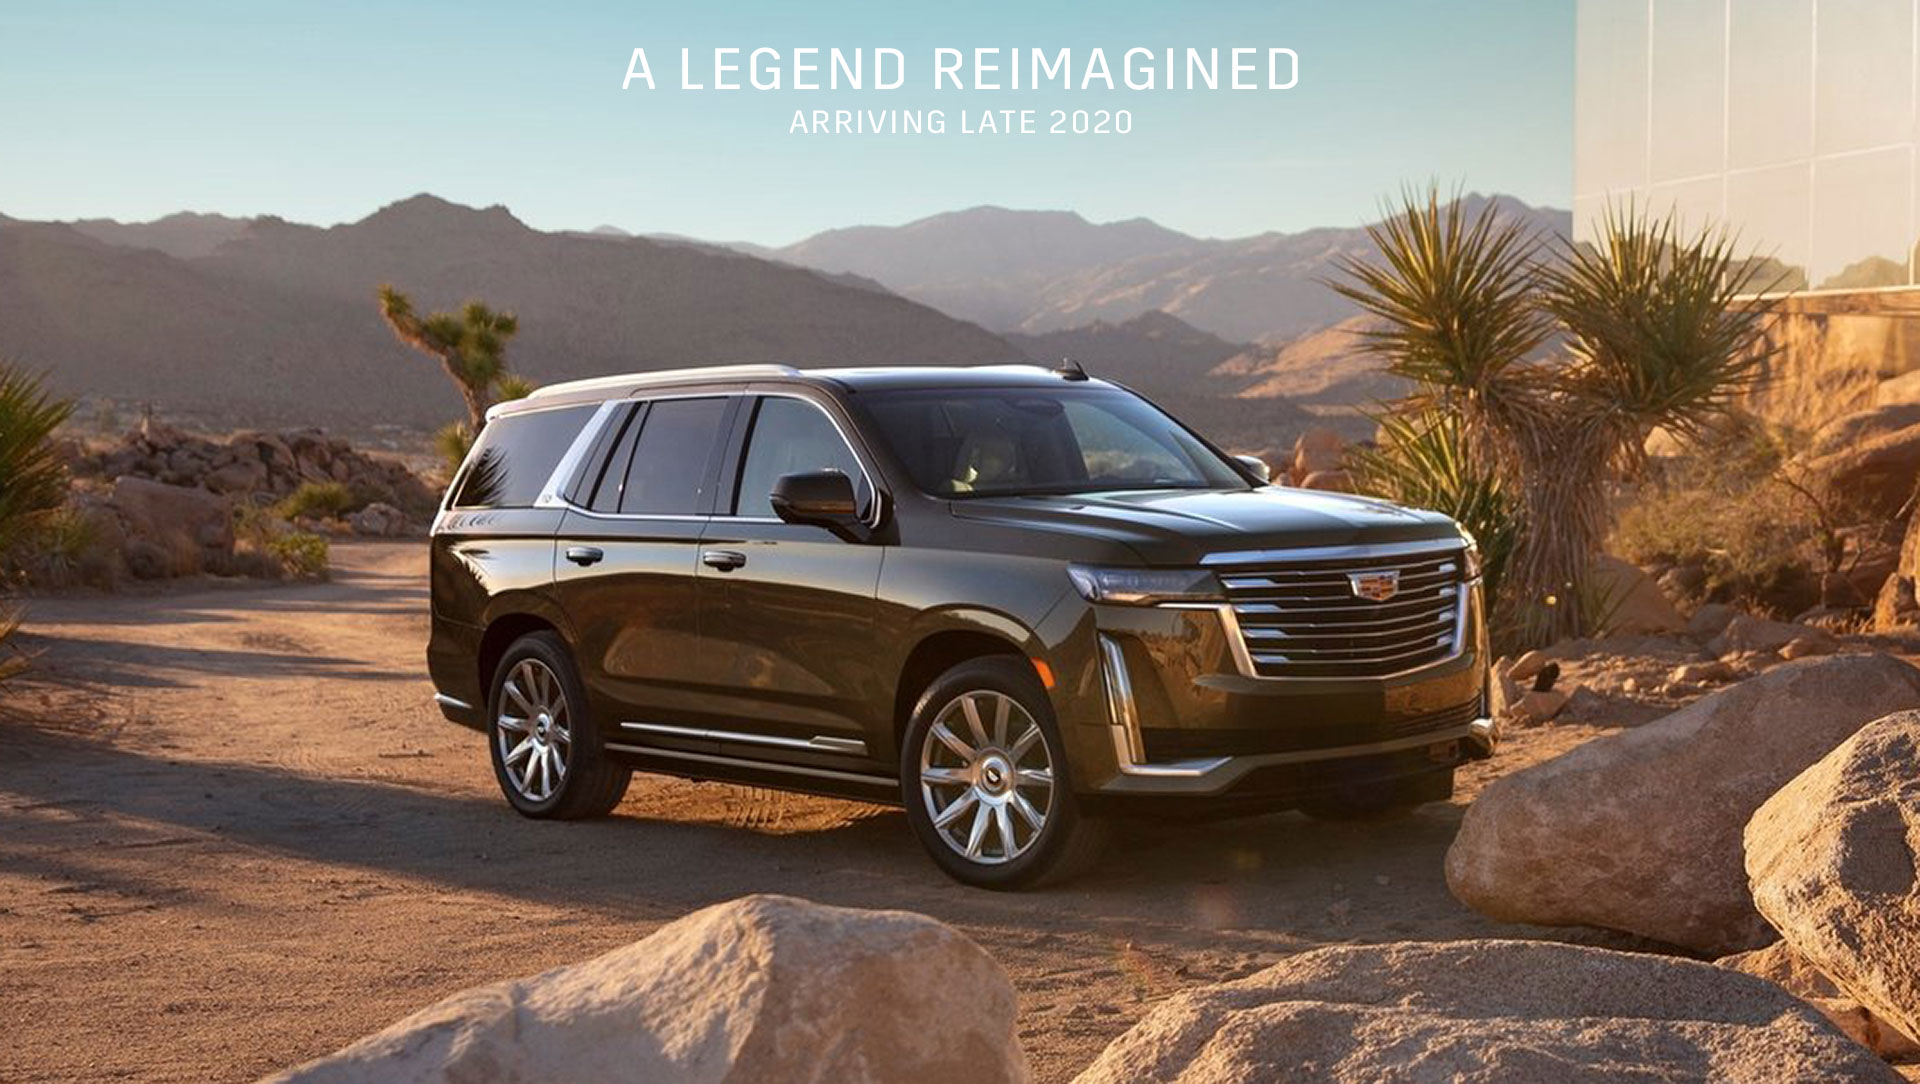 2021 cadillac escalade for sale in thornhill ontario roy foss thornhill 2021 cadillac escalade for sale in